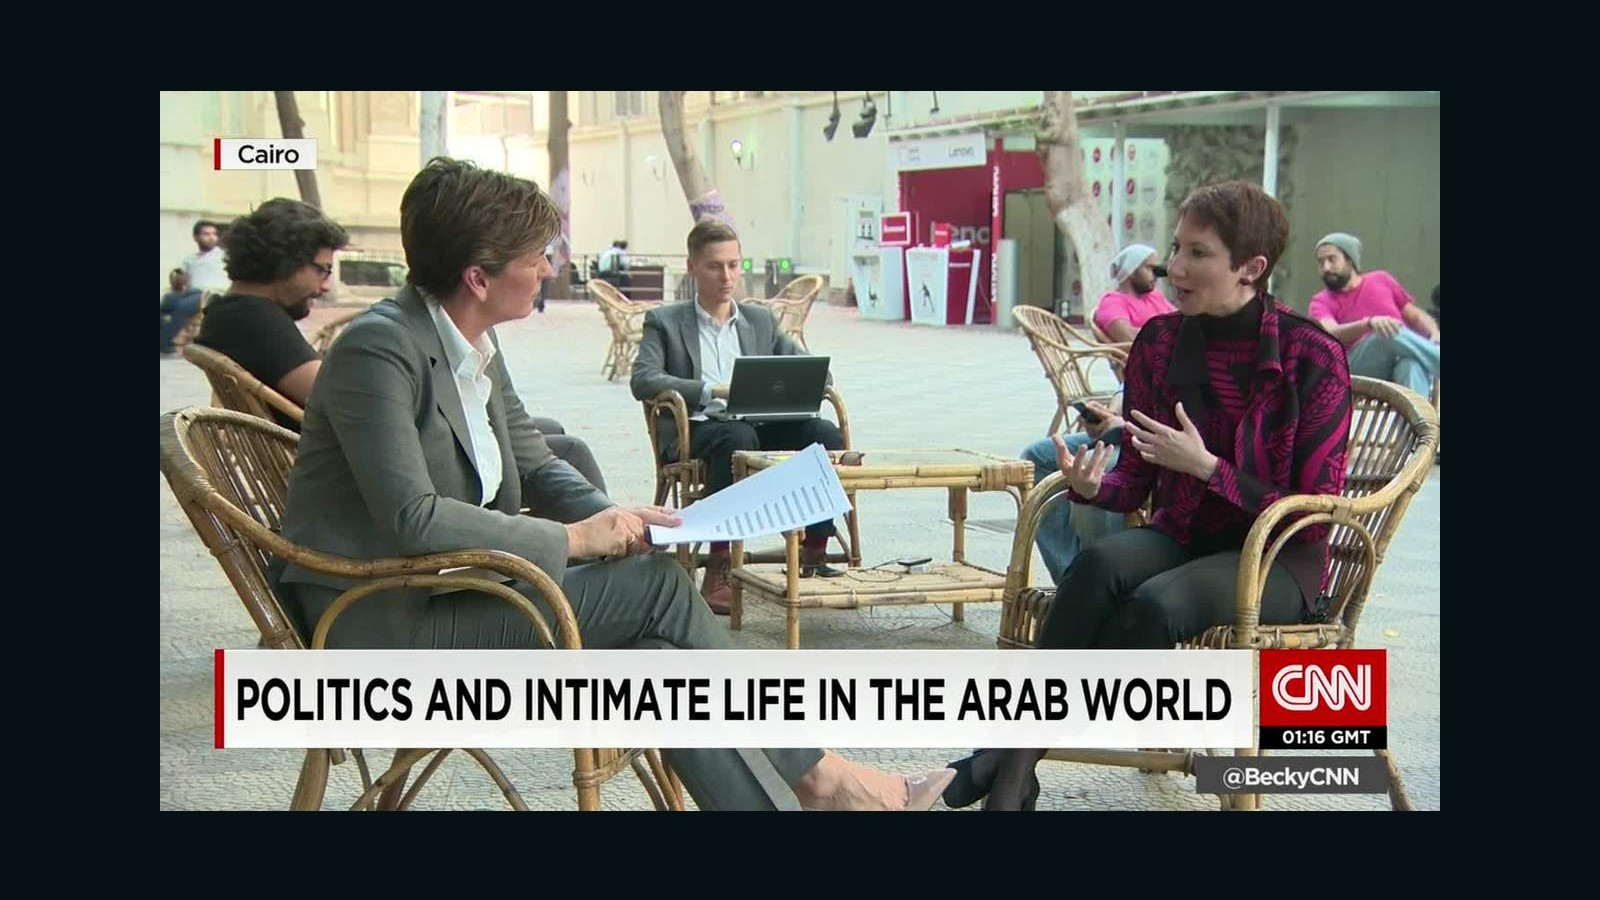 sex in the middle east - cnn video